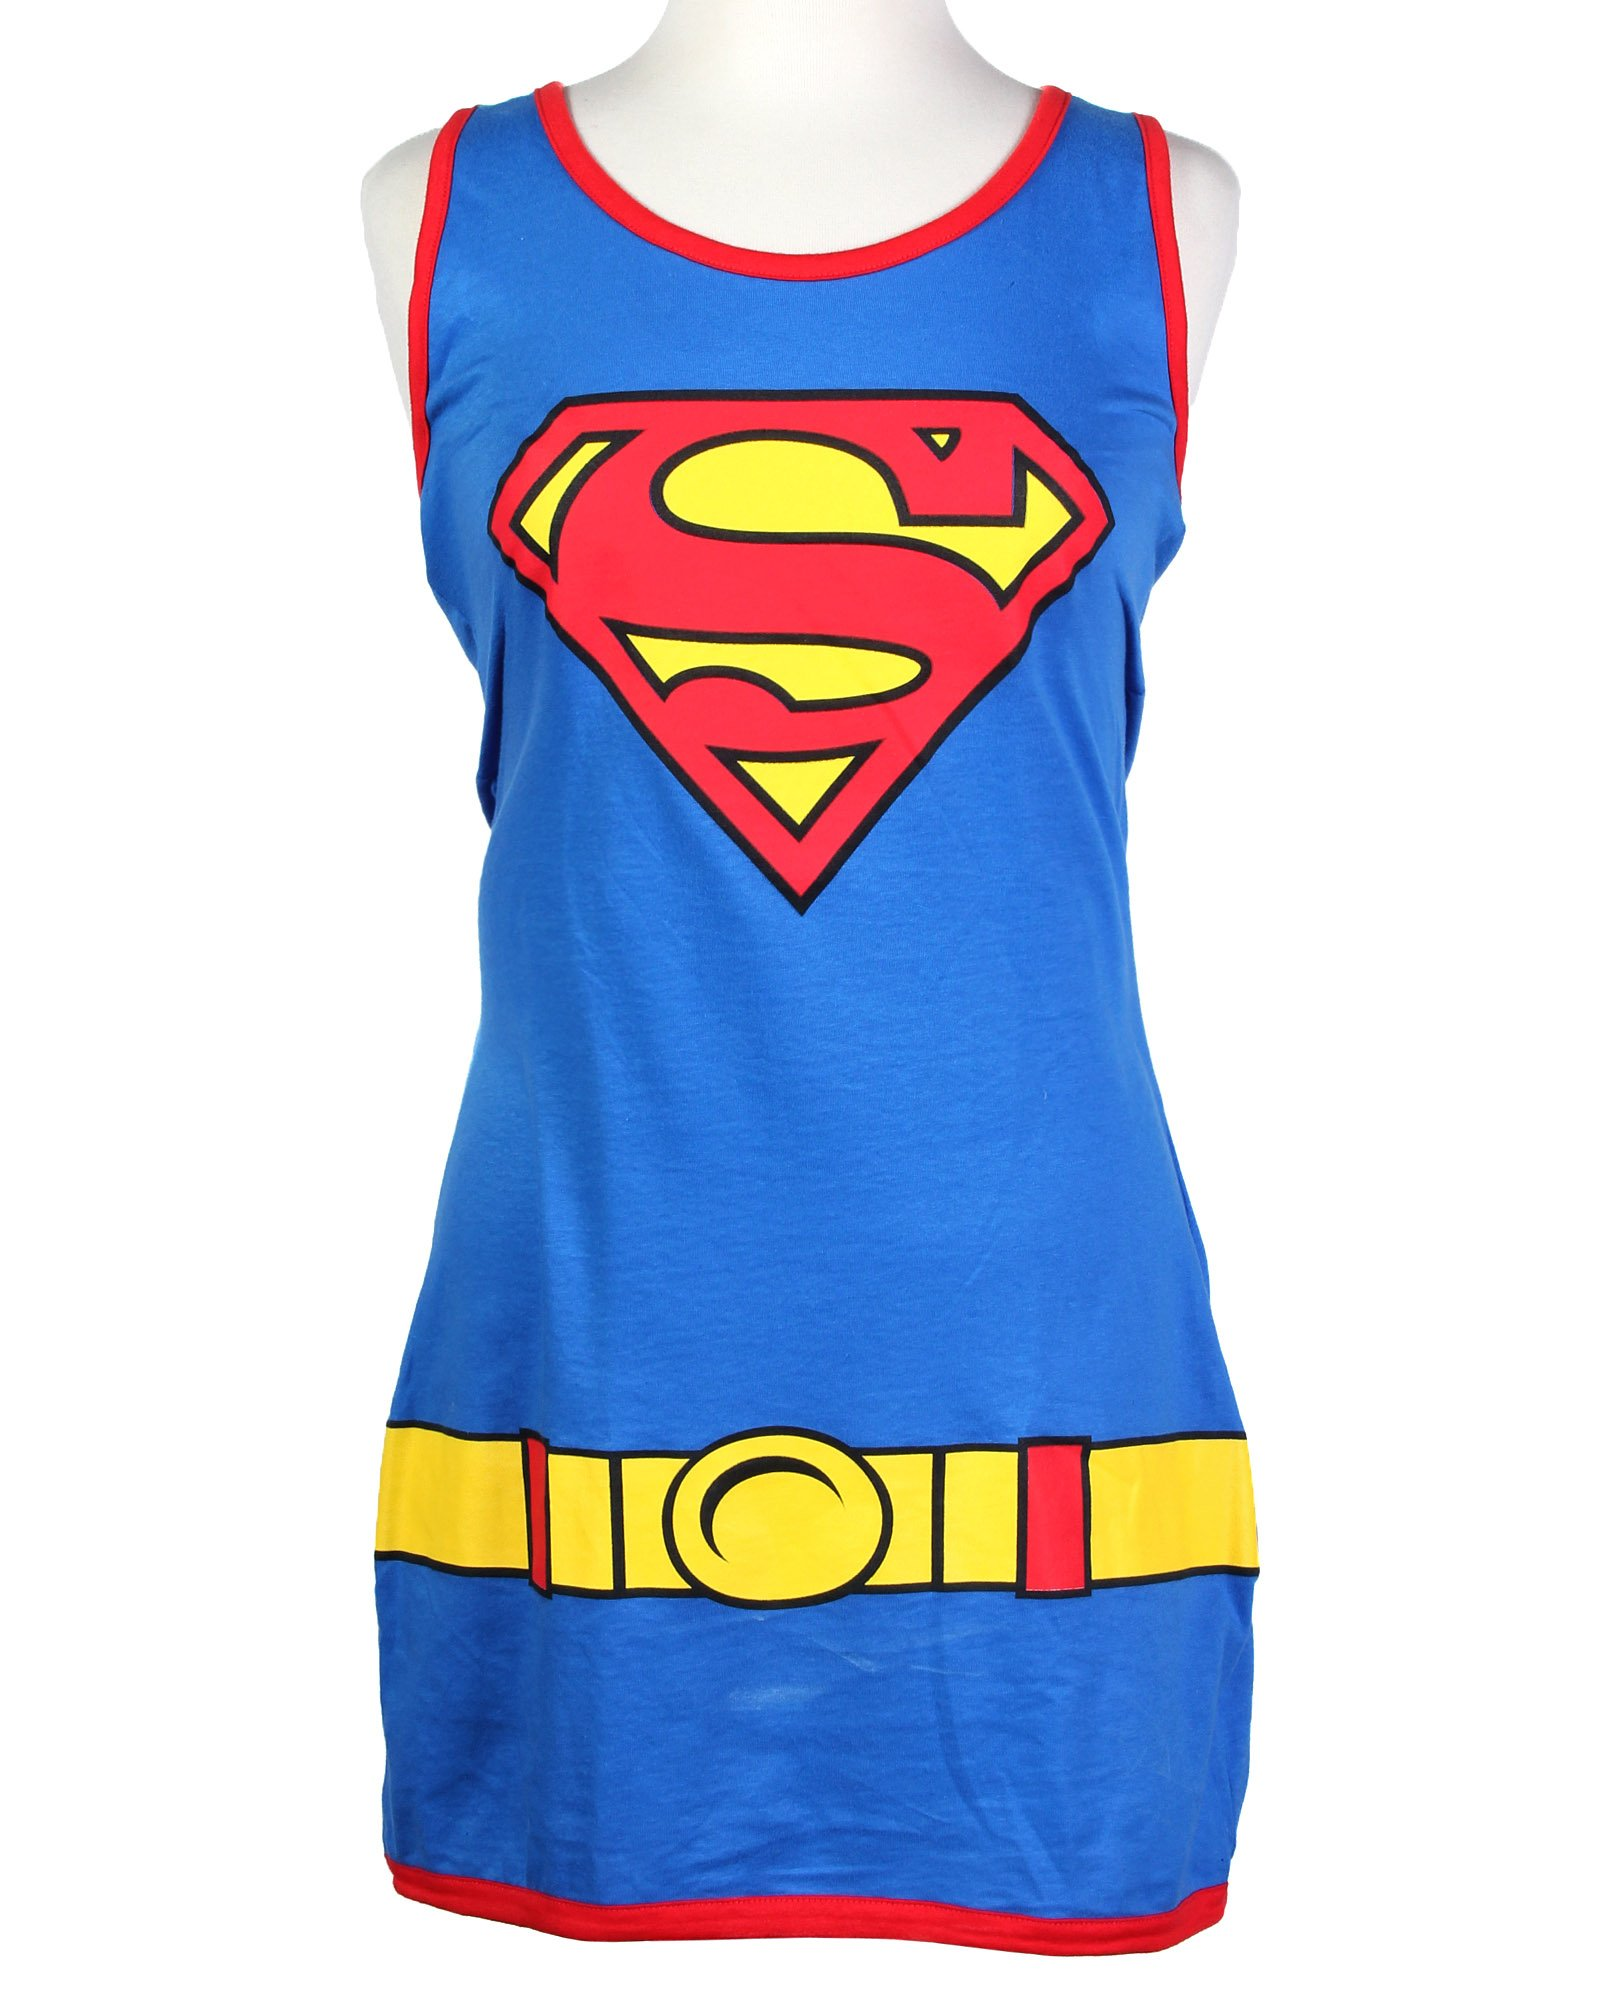 DC Comics Batman Super Girl Character Juniors Tank Dress (Small, Super Girl) by DC Comics (Image #2)